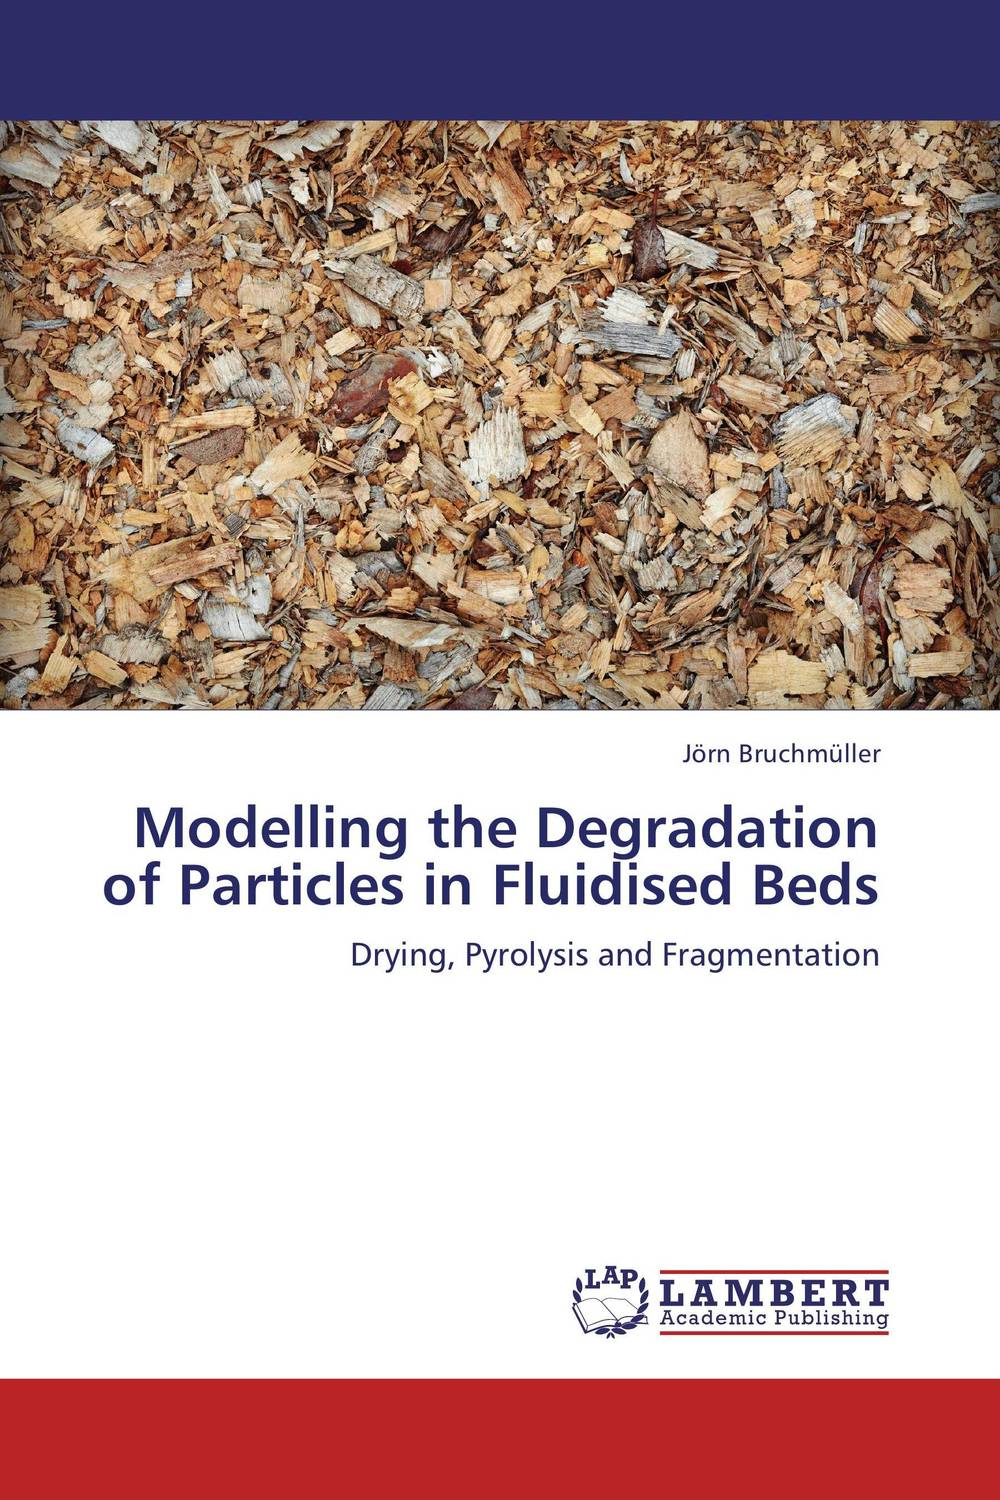 Modelling the Degradation of Particles in Fluidised Beds kumiko nakanishi japanese grammar practice particles wa and ga complex case particles and adverbial particles практическая граматика японского языка продвинутого уровня частицы